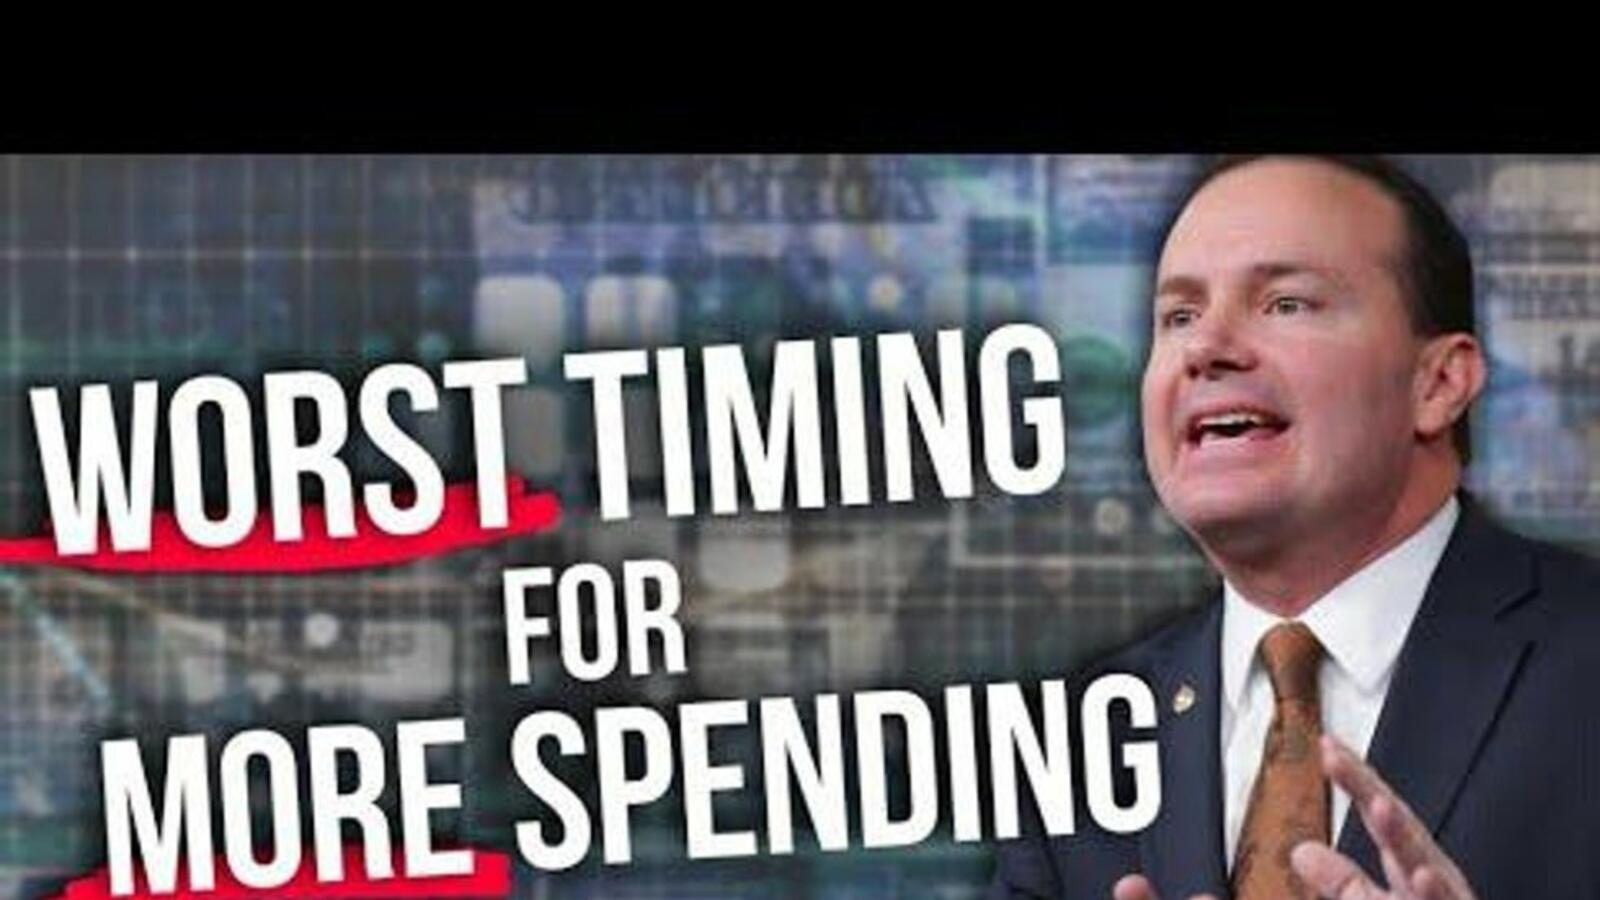 Sen. Mike Lee: $1.2 TRILLION bill furthers 'RECKLESS' government spending